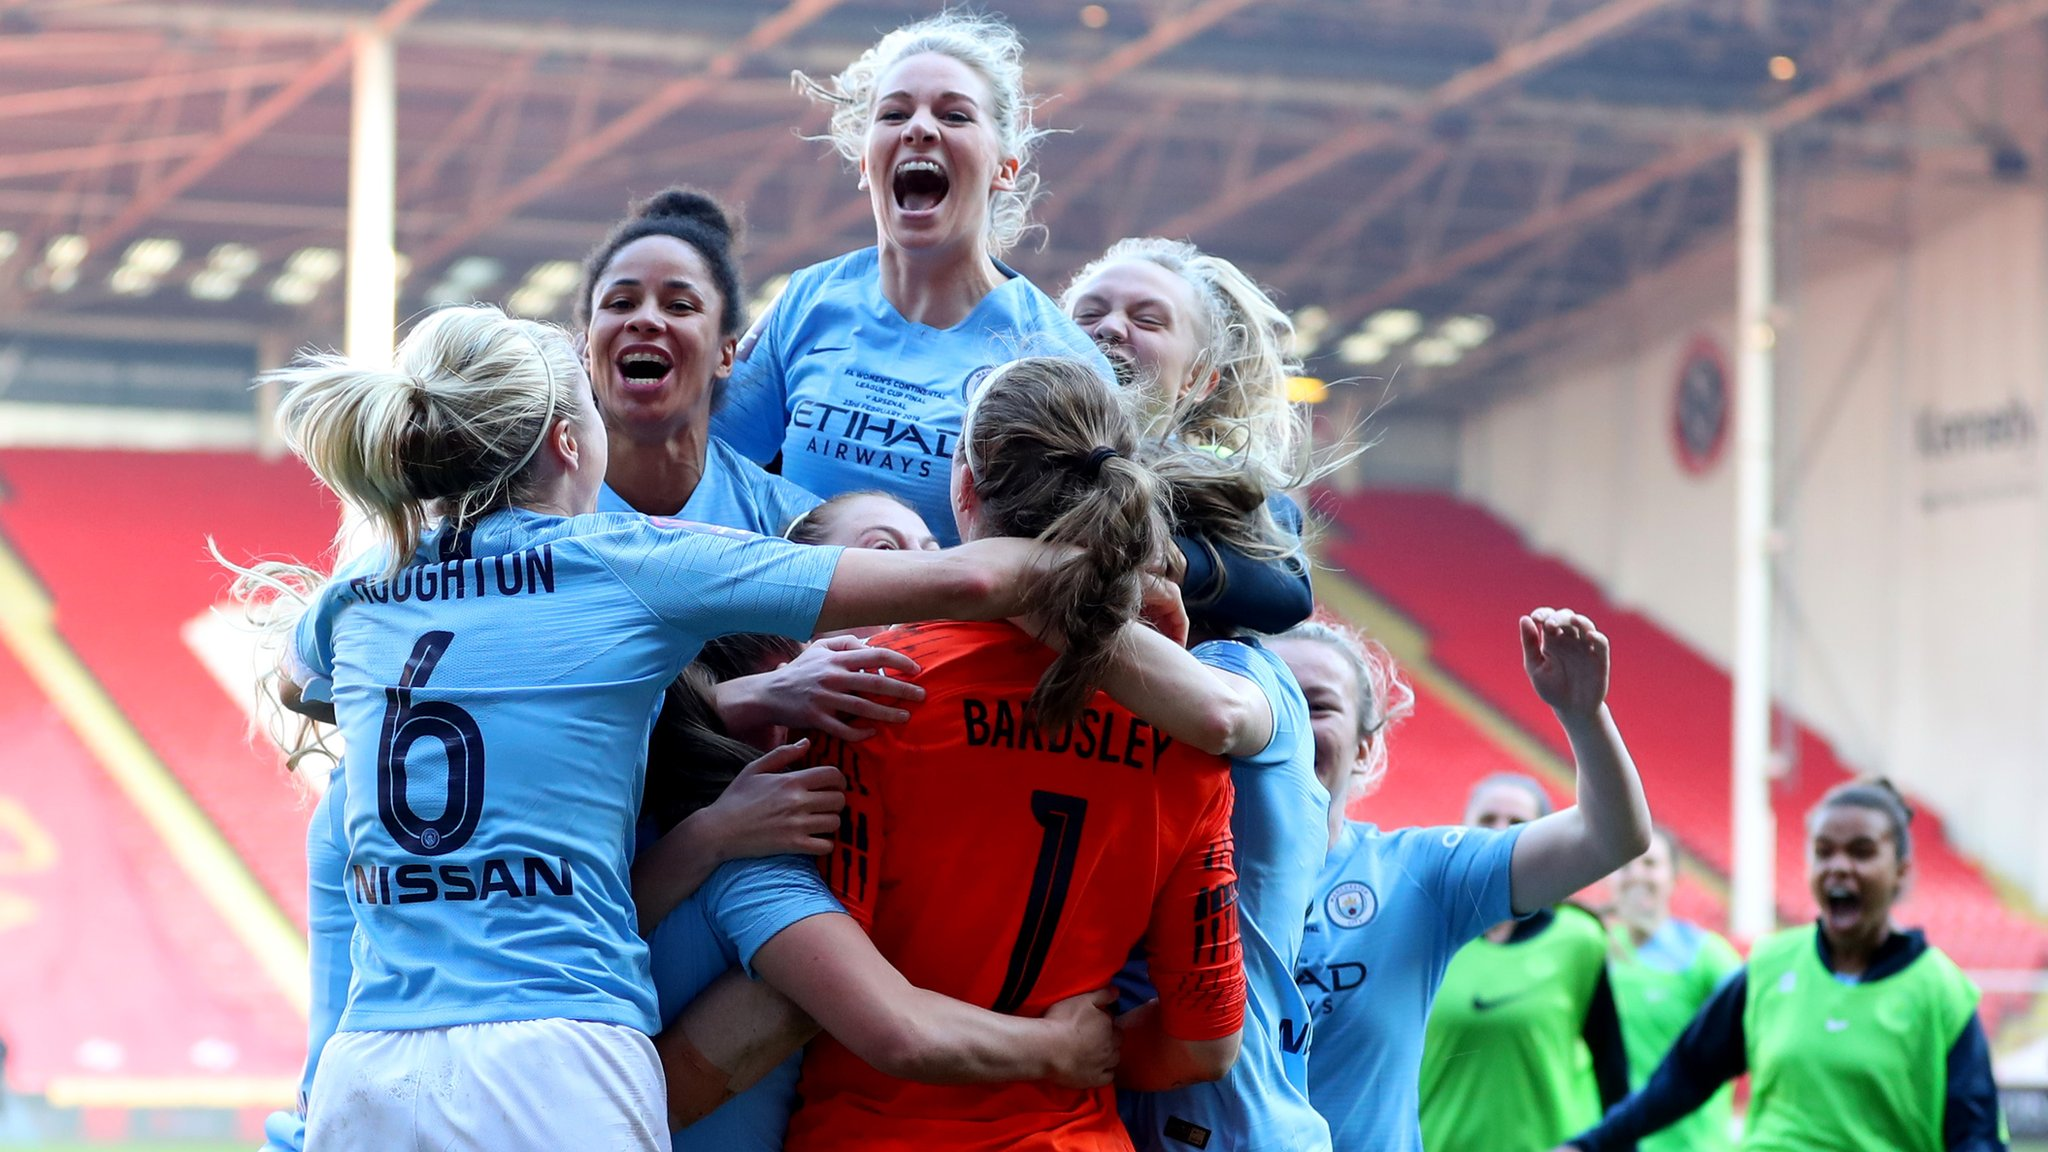 Women's Continental League Cup final: Arsenal 0-0 Manchester City (2-4 pens)